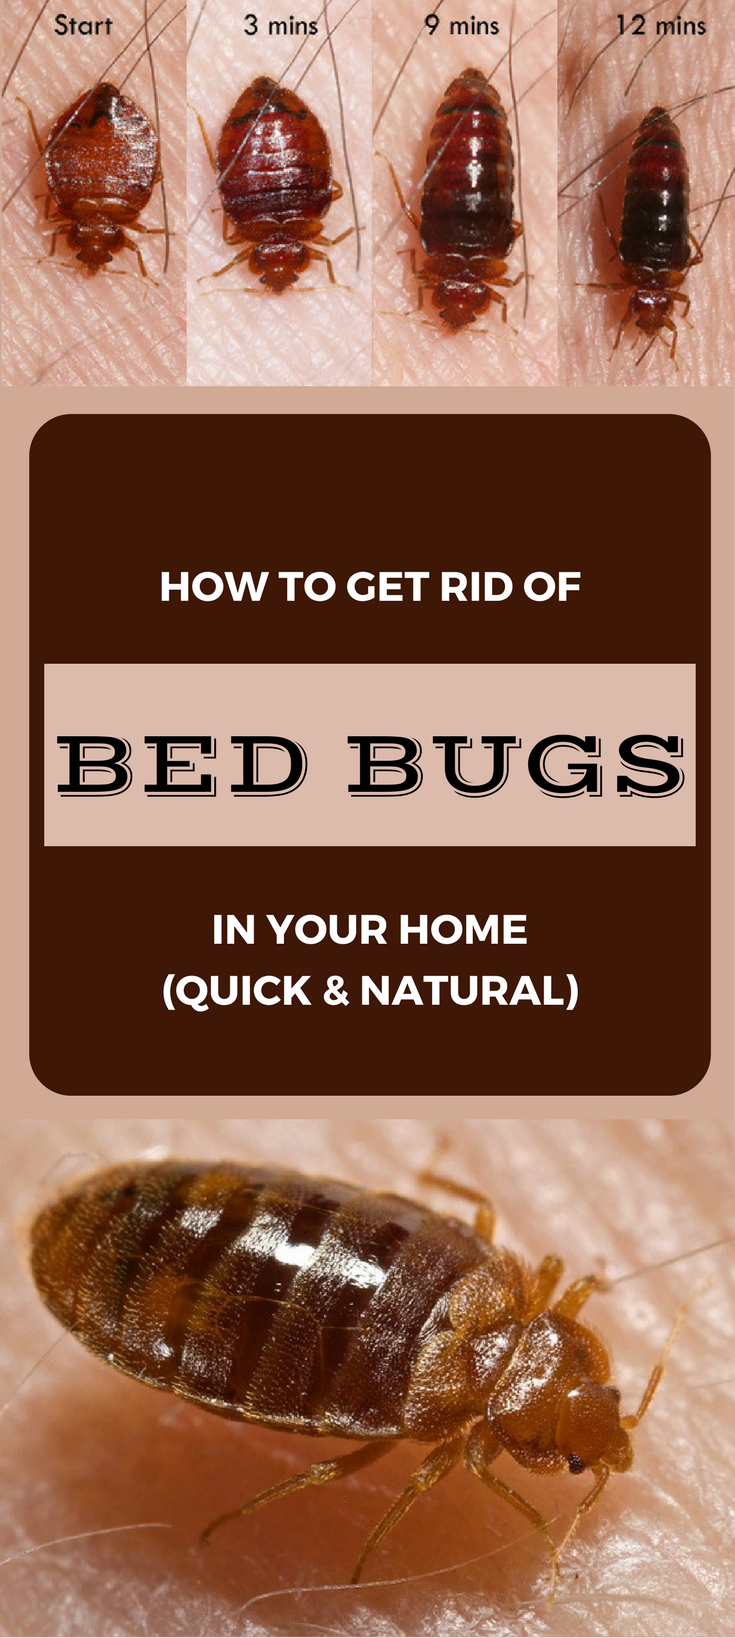 How To Get Rid Of Bed Bugs Using Rubbing Alcohol